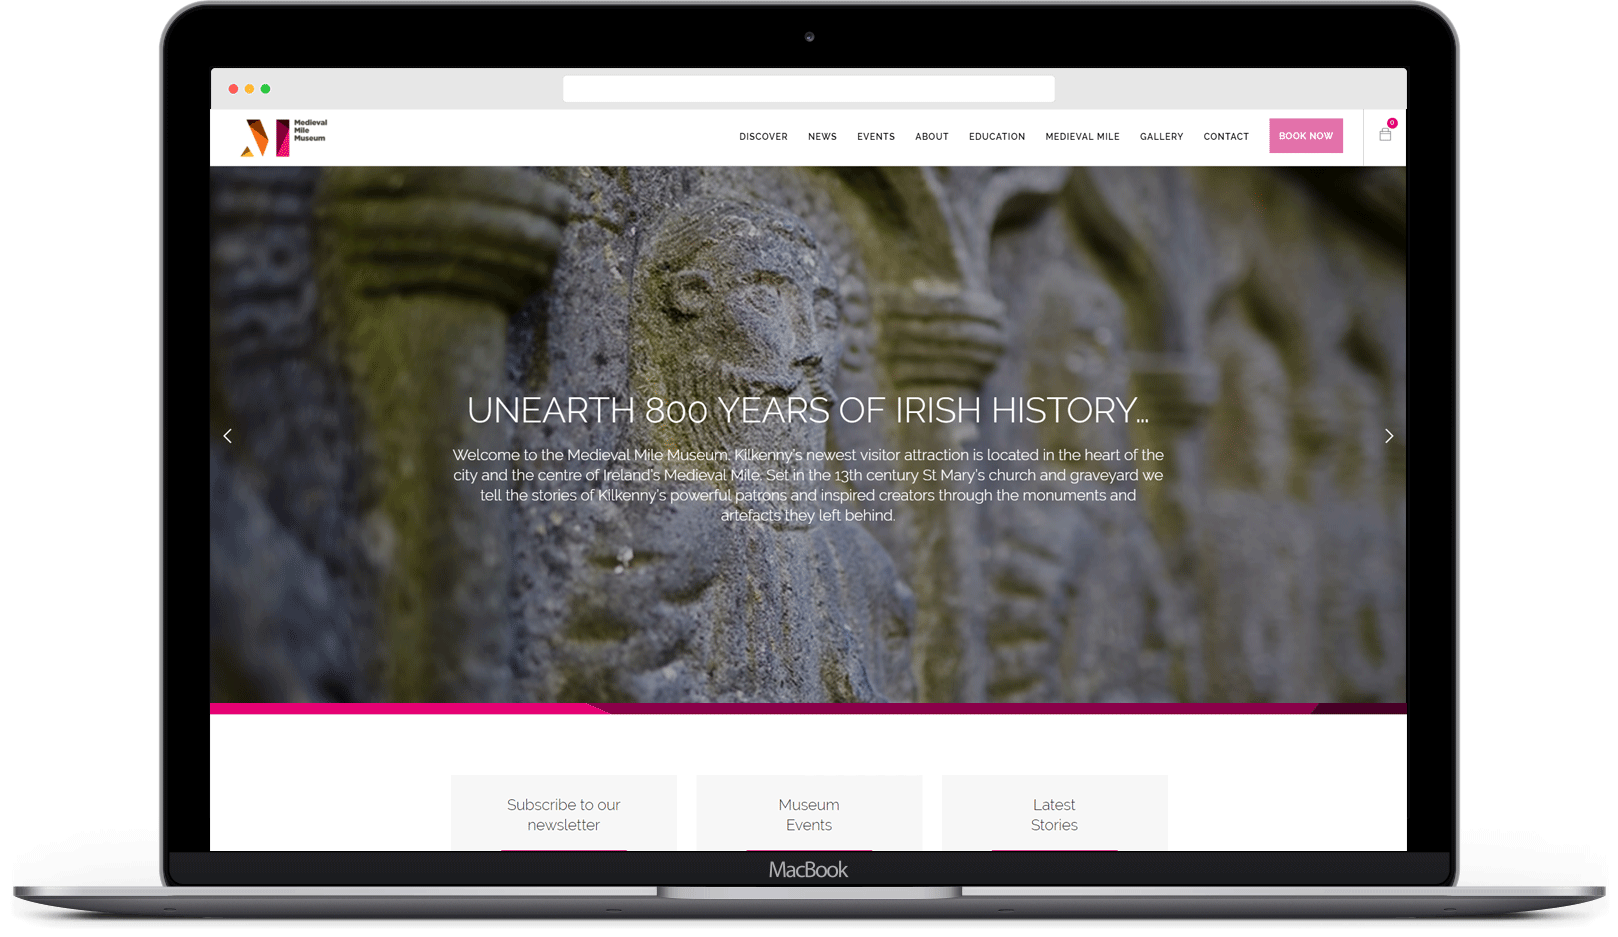 Responsive website for Medieval Mile Museum viewed on a laptop